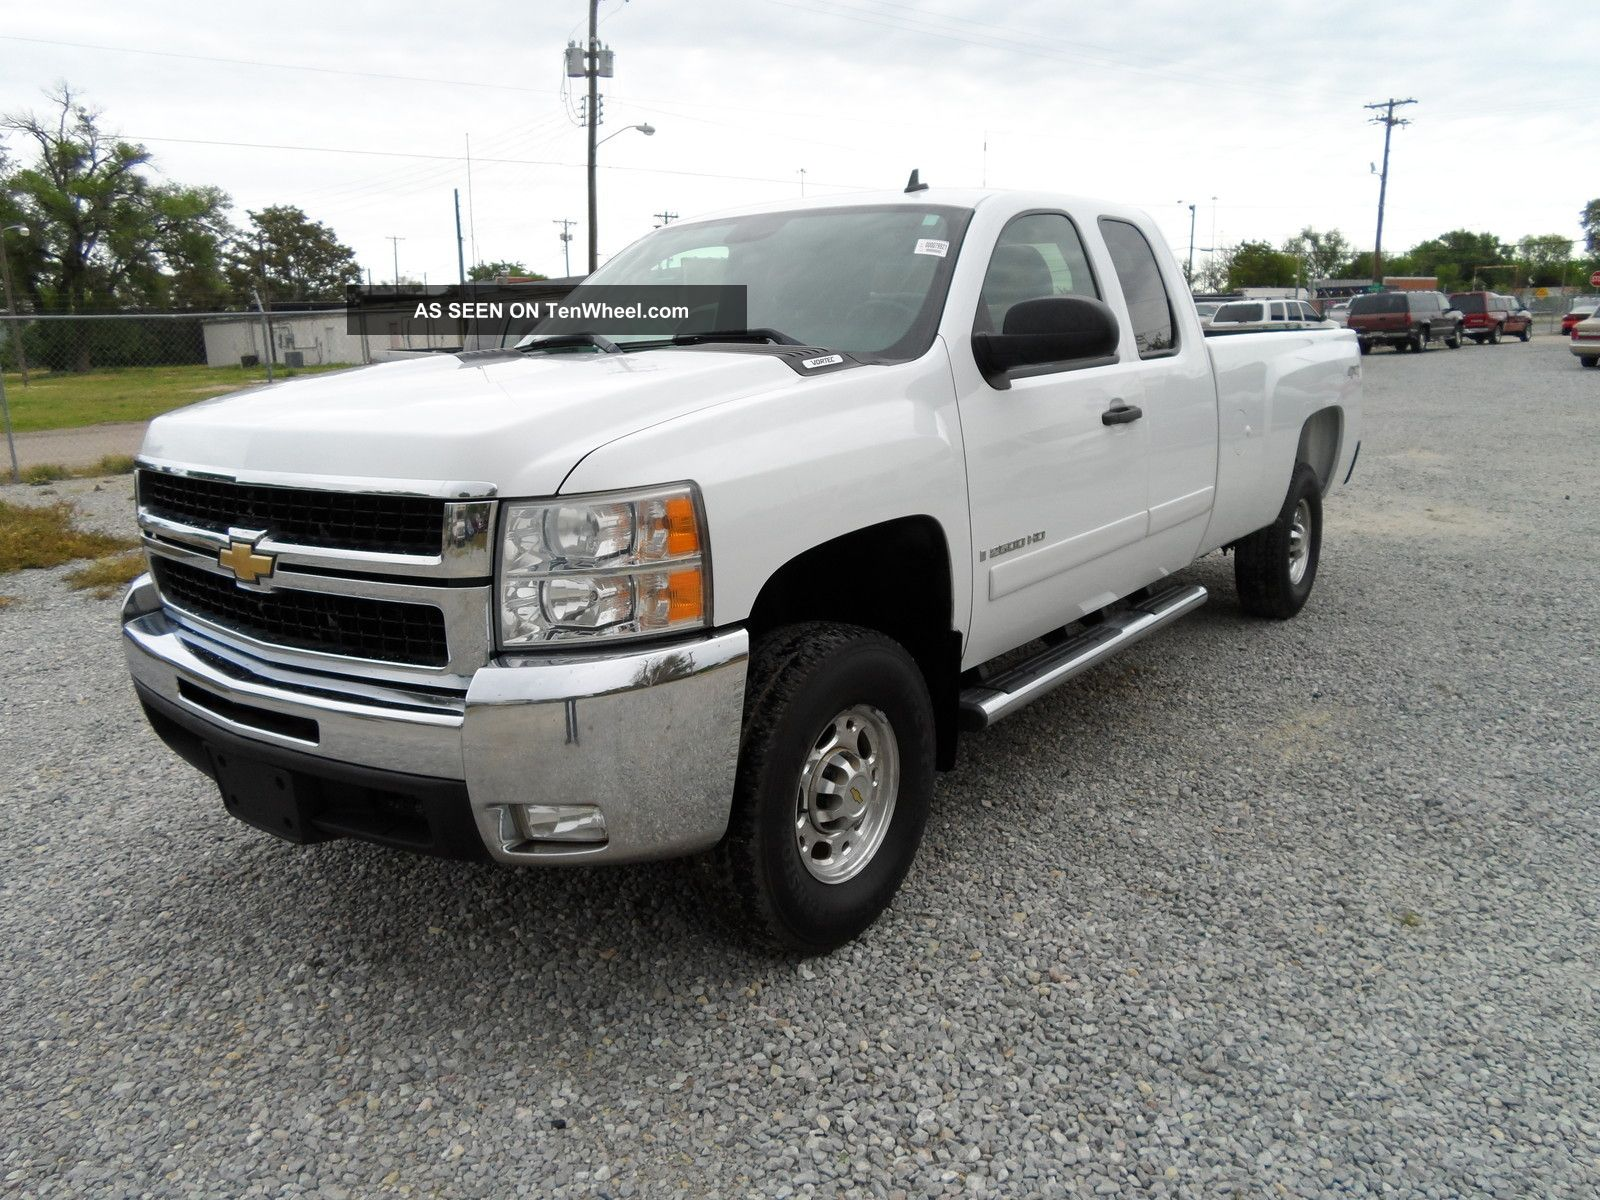 2007 chevrolet silverado hd 2500 lt 4x4 extended cab. Black Bedroom Furniture Sets. Home Design Ideas